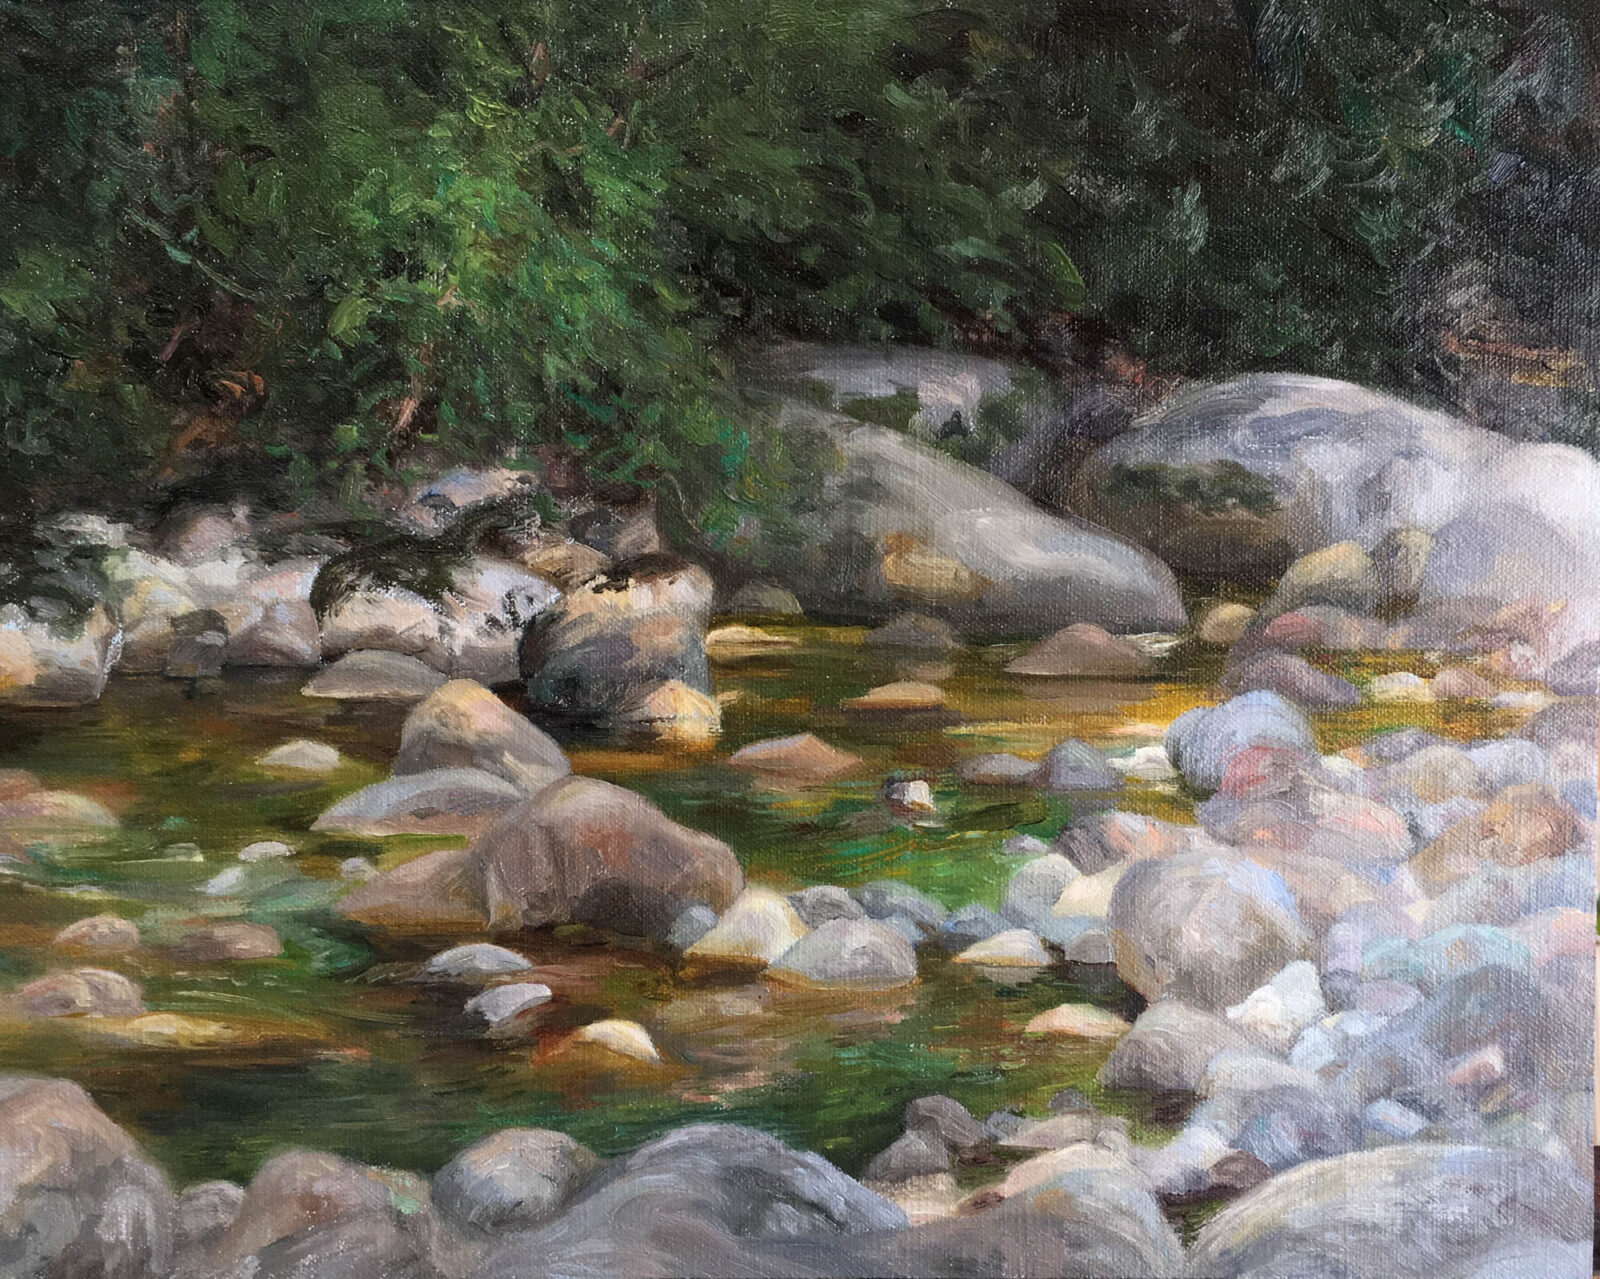 Liza Visagie - River. Oil on Linen 10.5 x 13.5 inches